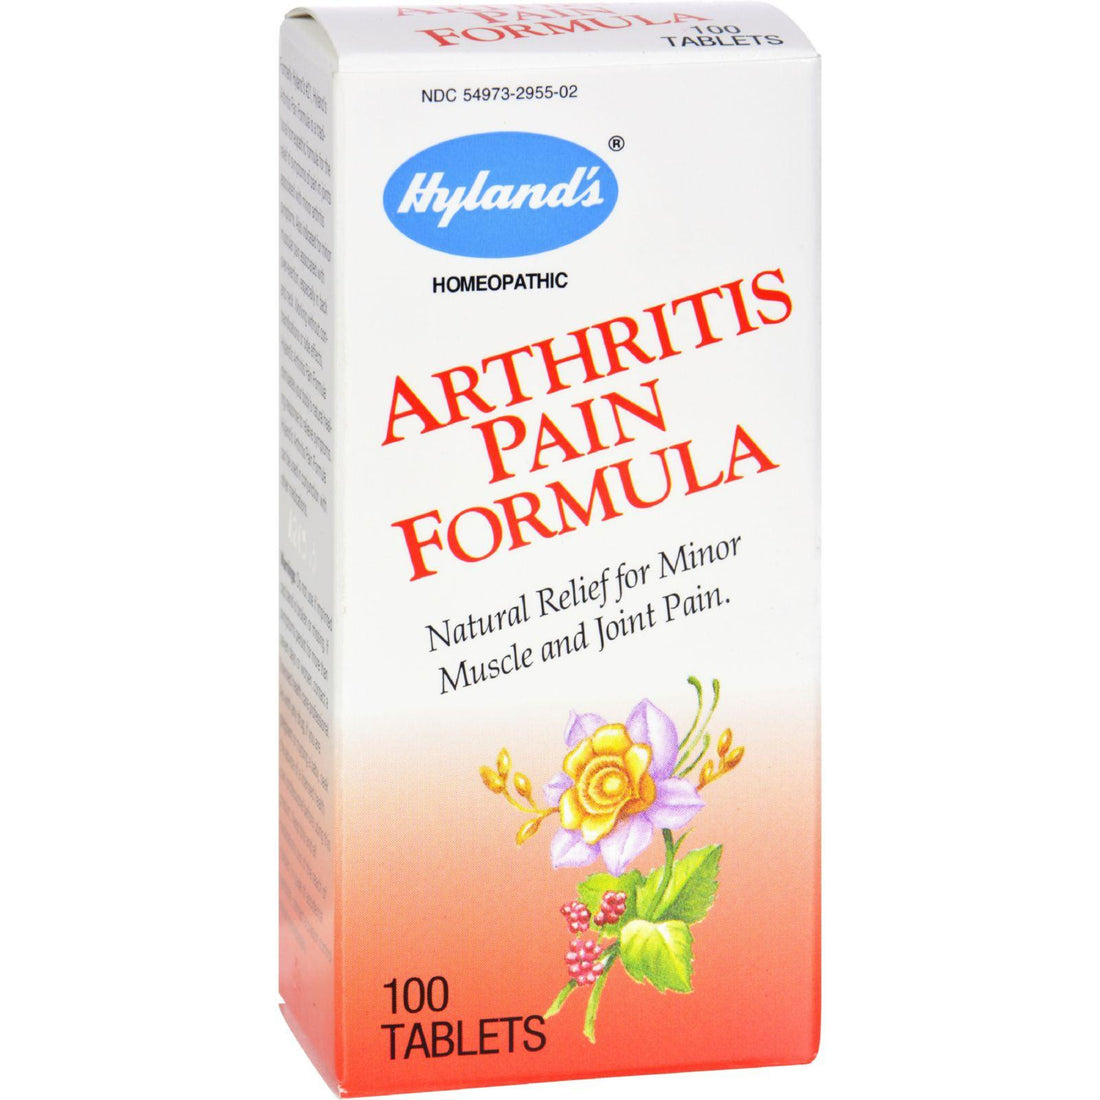 Mother Mantis: Hylands Homeopathic Arthritis Pain Formula - 100 Tablets Hyland's